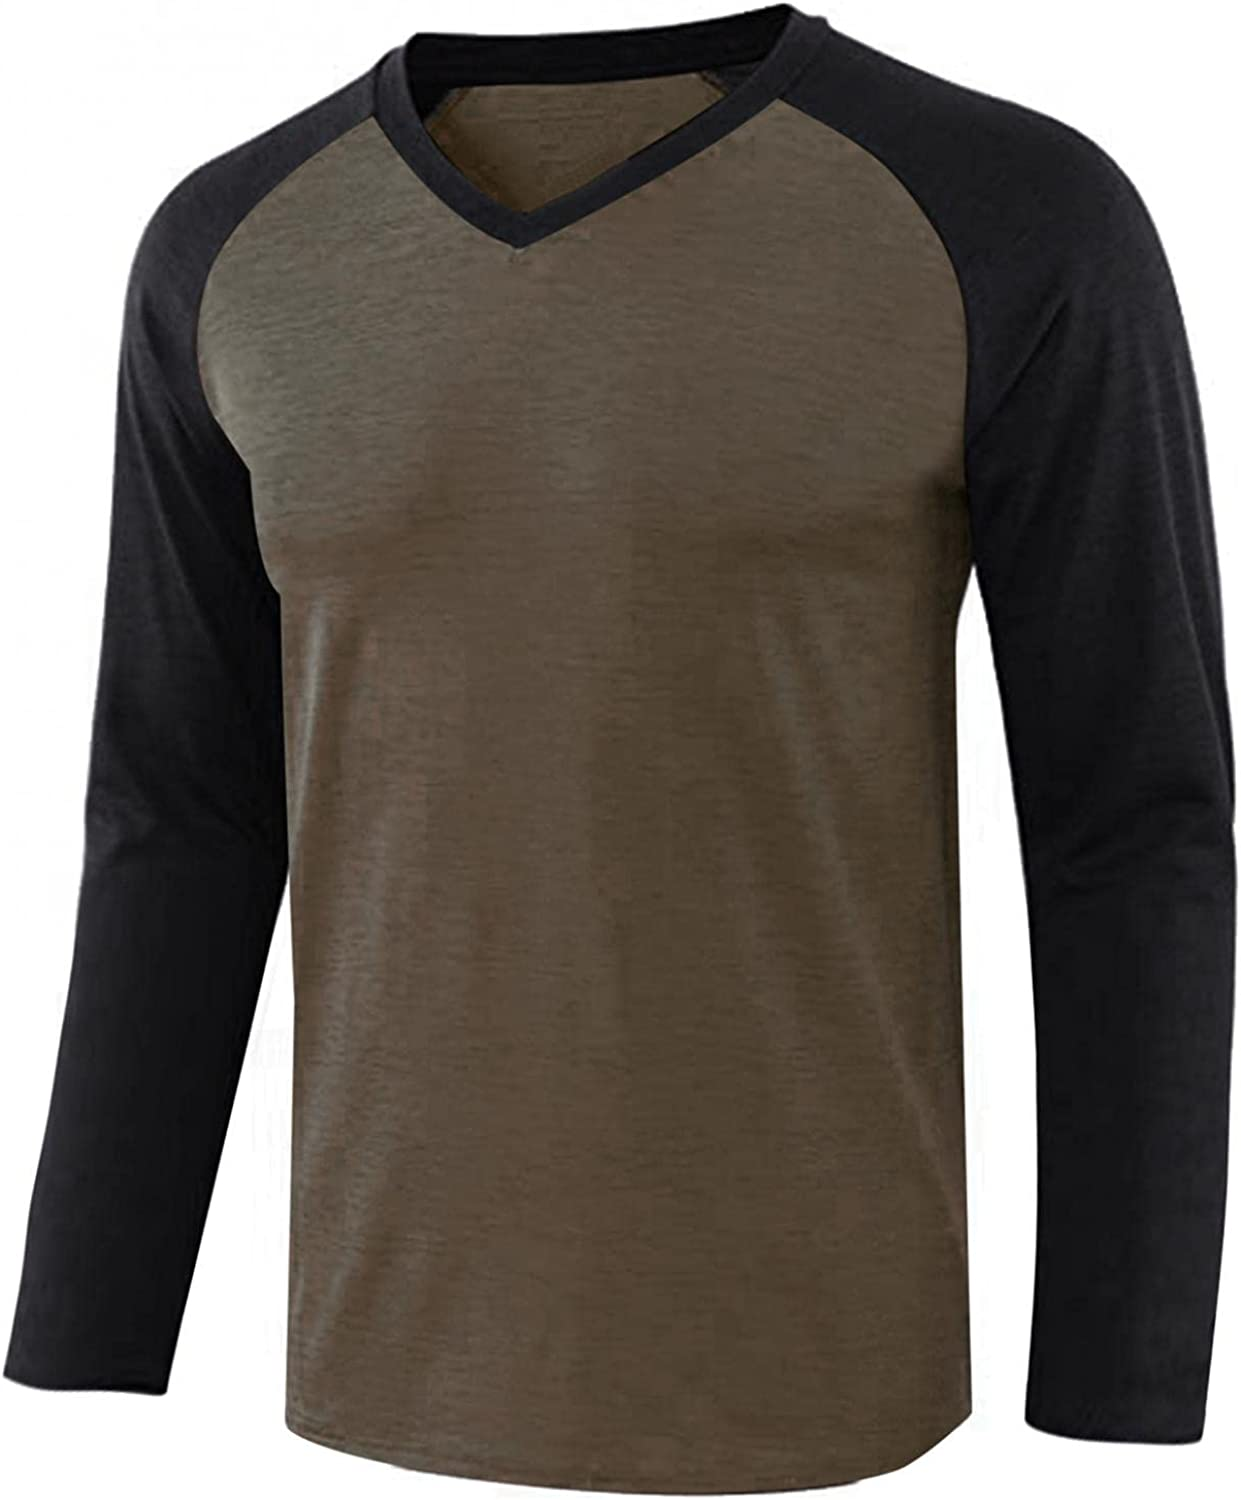 VEKDONE Long Sleeve Our shop OFFers the best service 70% OFF Outlet Tee Shirts Men Lightweight Basic Casual for